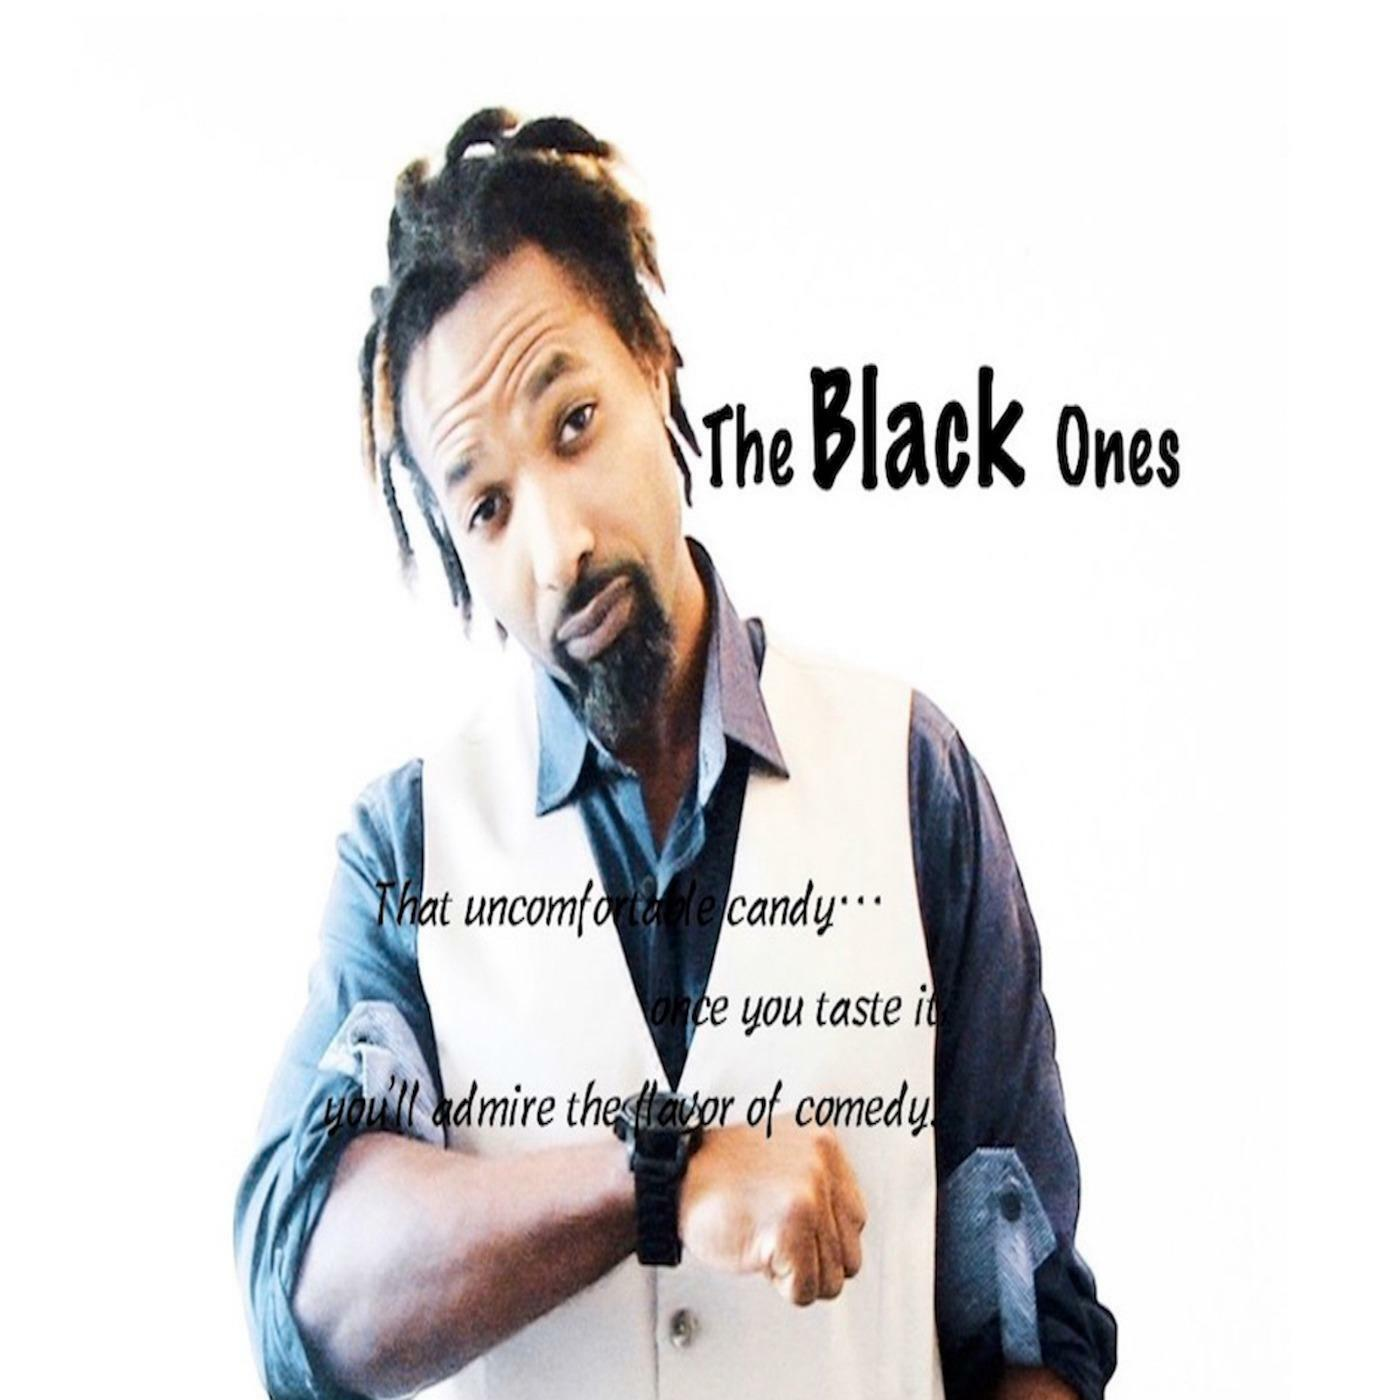 Listen Free to The Black Ones on iHeartRadio Podcasts | iHeartRadio